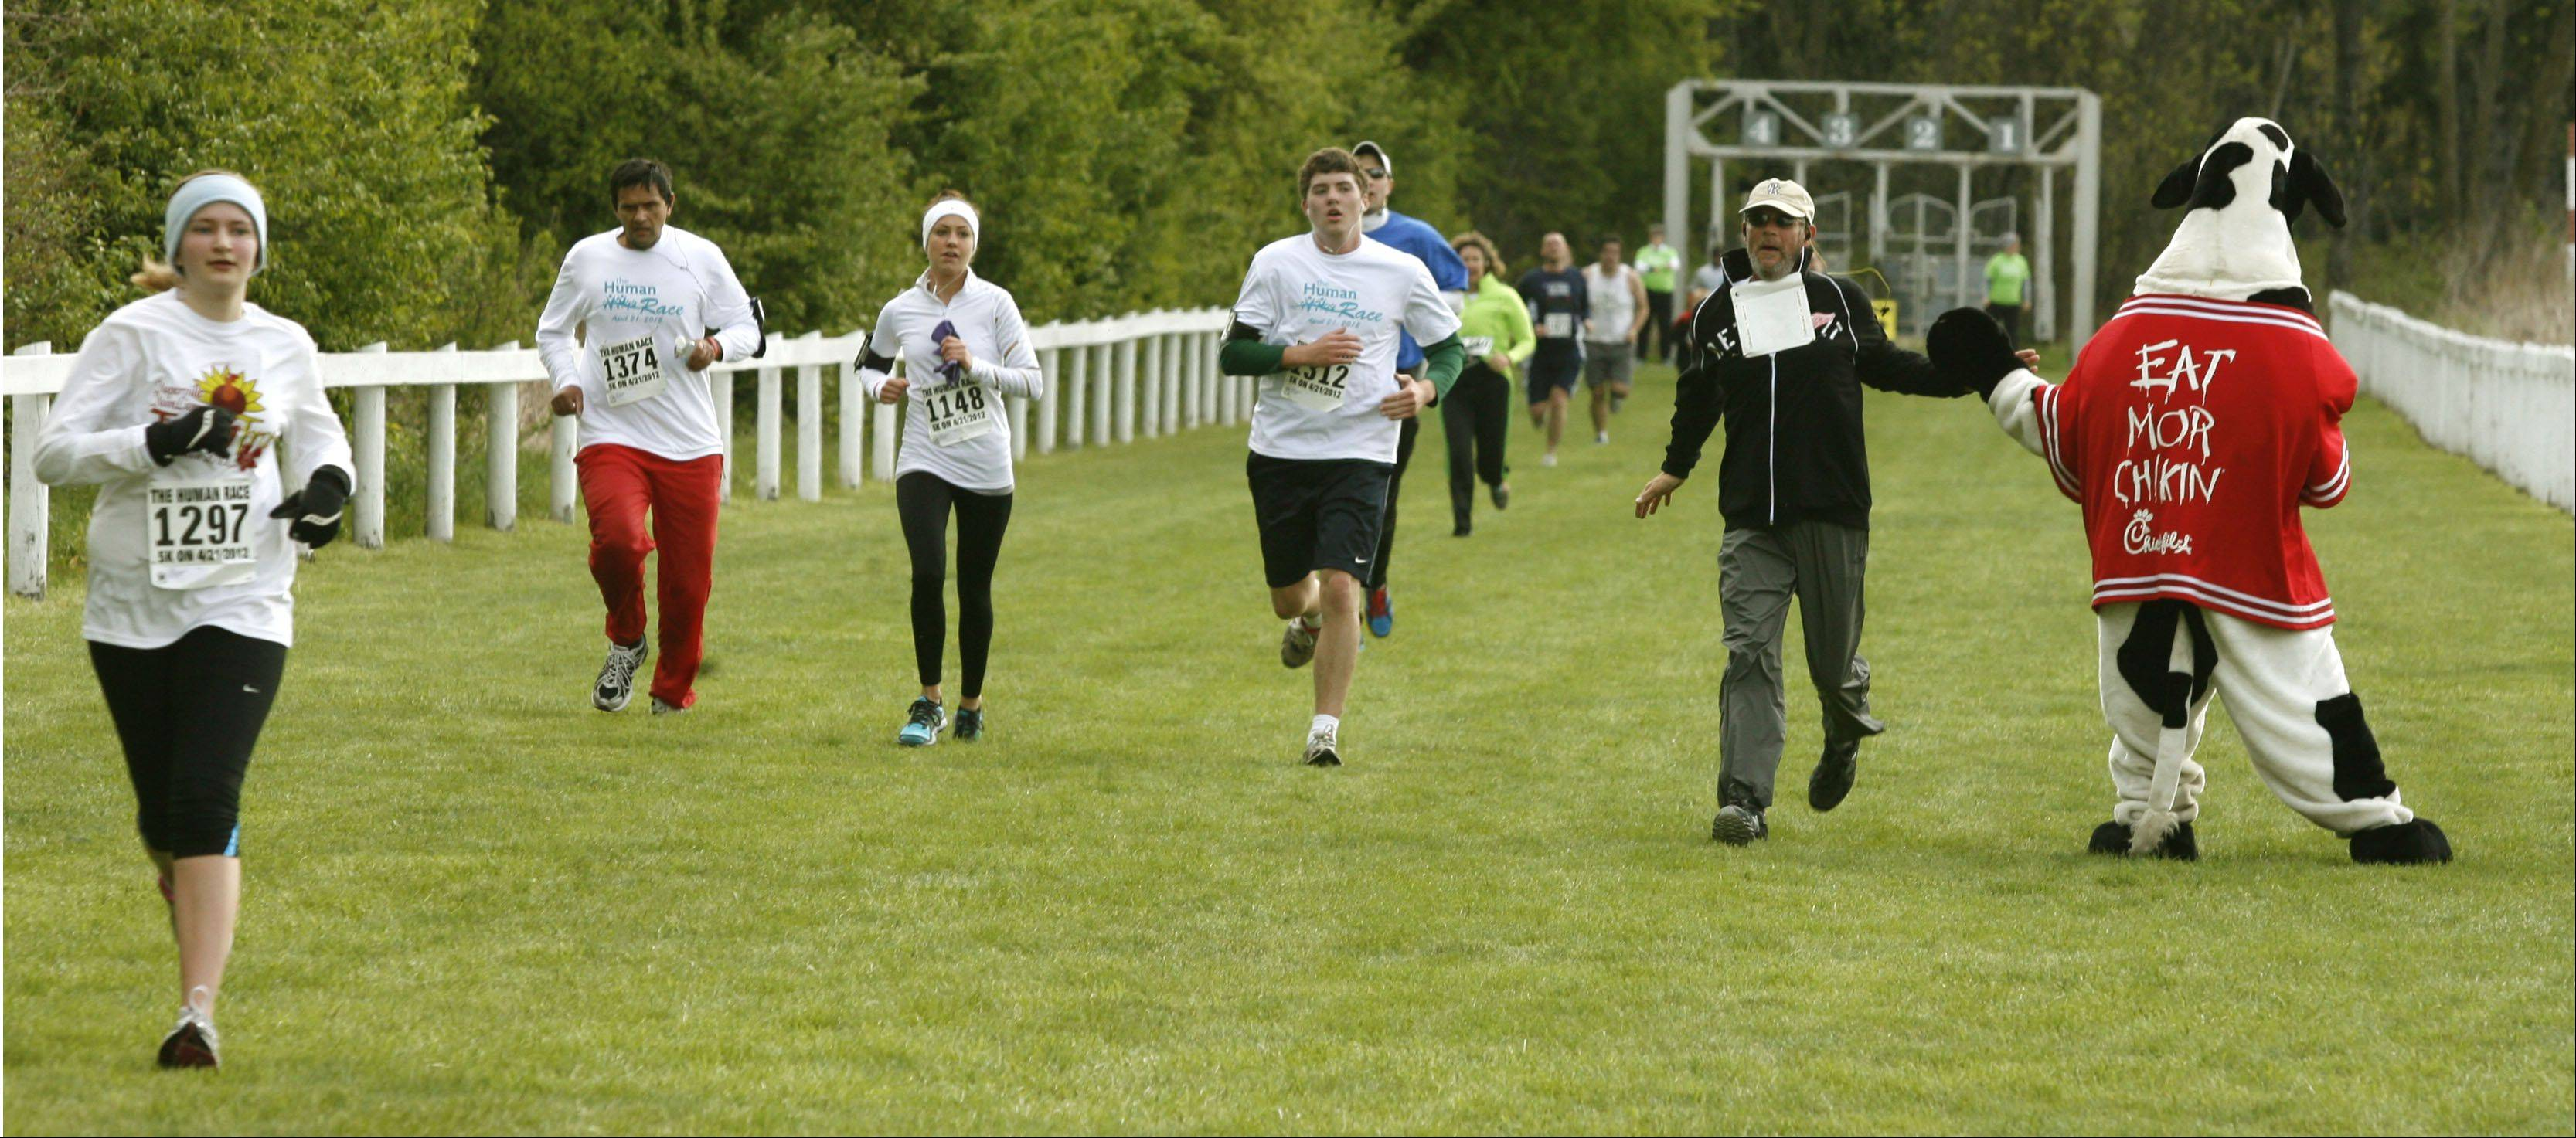 Human Race benefits range of DuPage charities